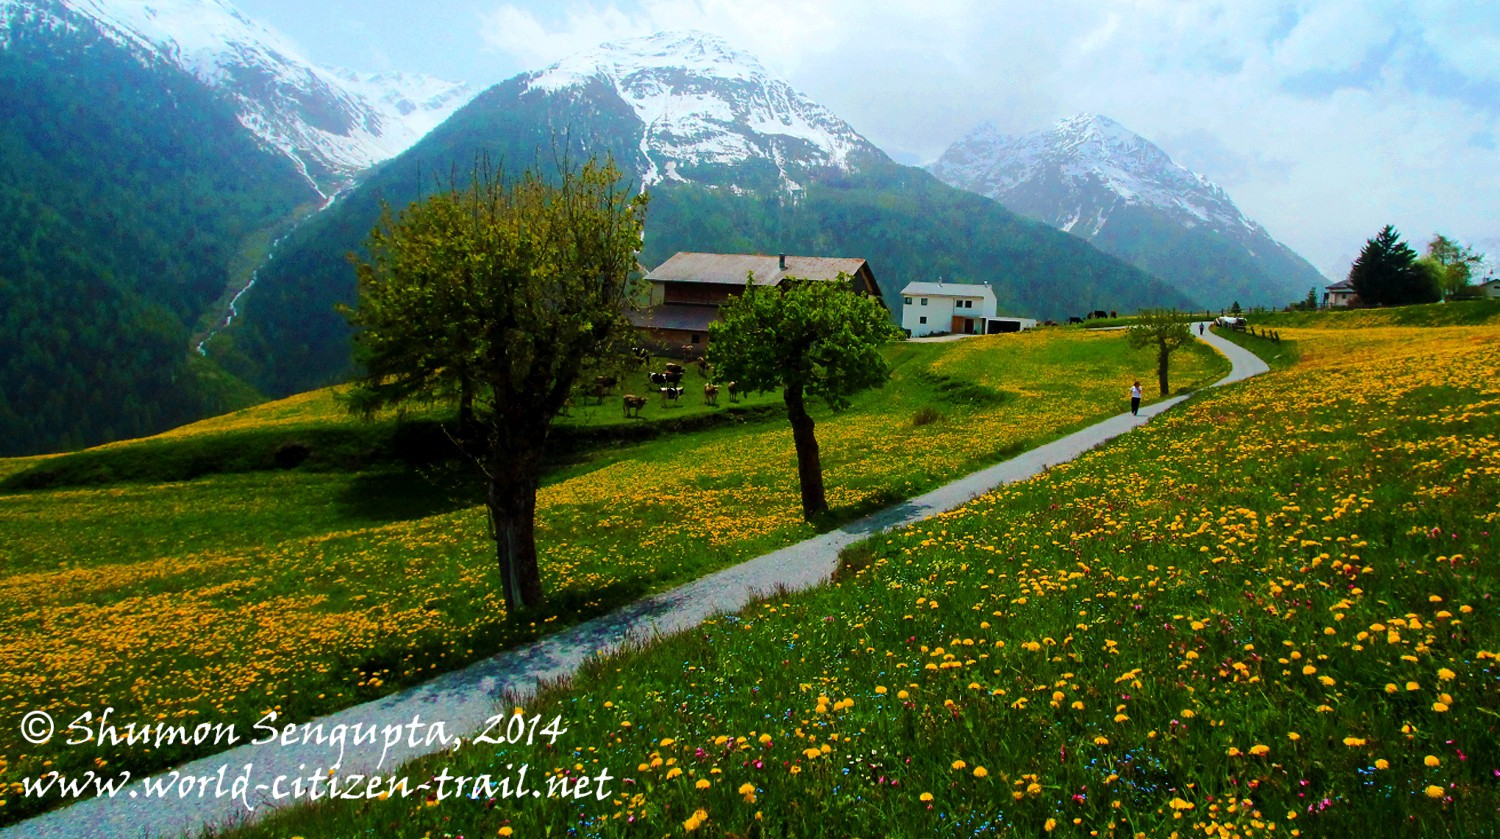 Into a Time Warp – Guarda Village in Lower Engadine Valley, Switzerland